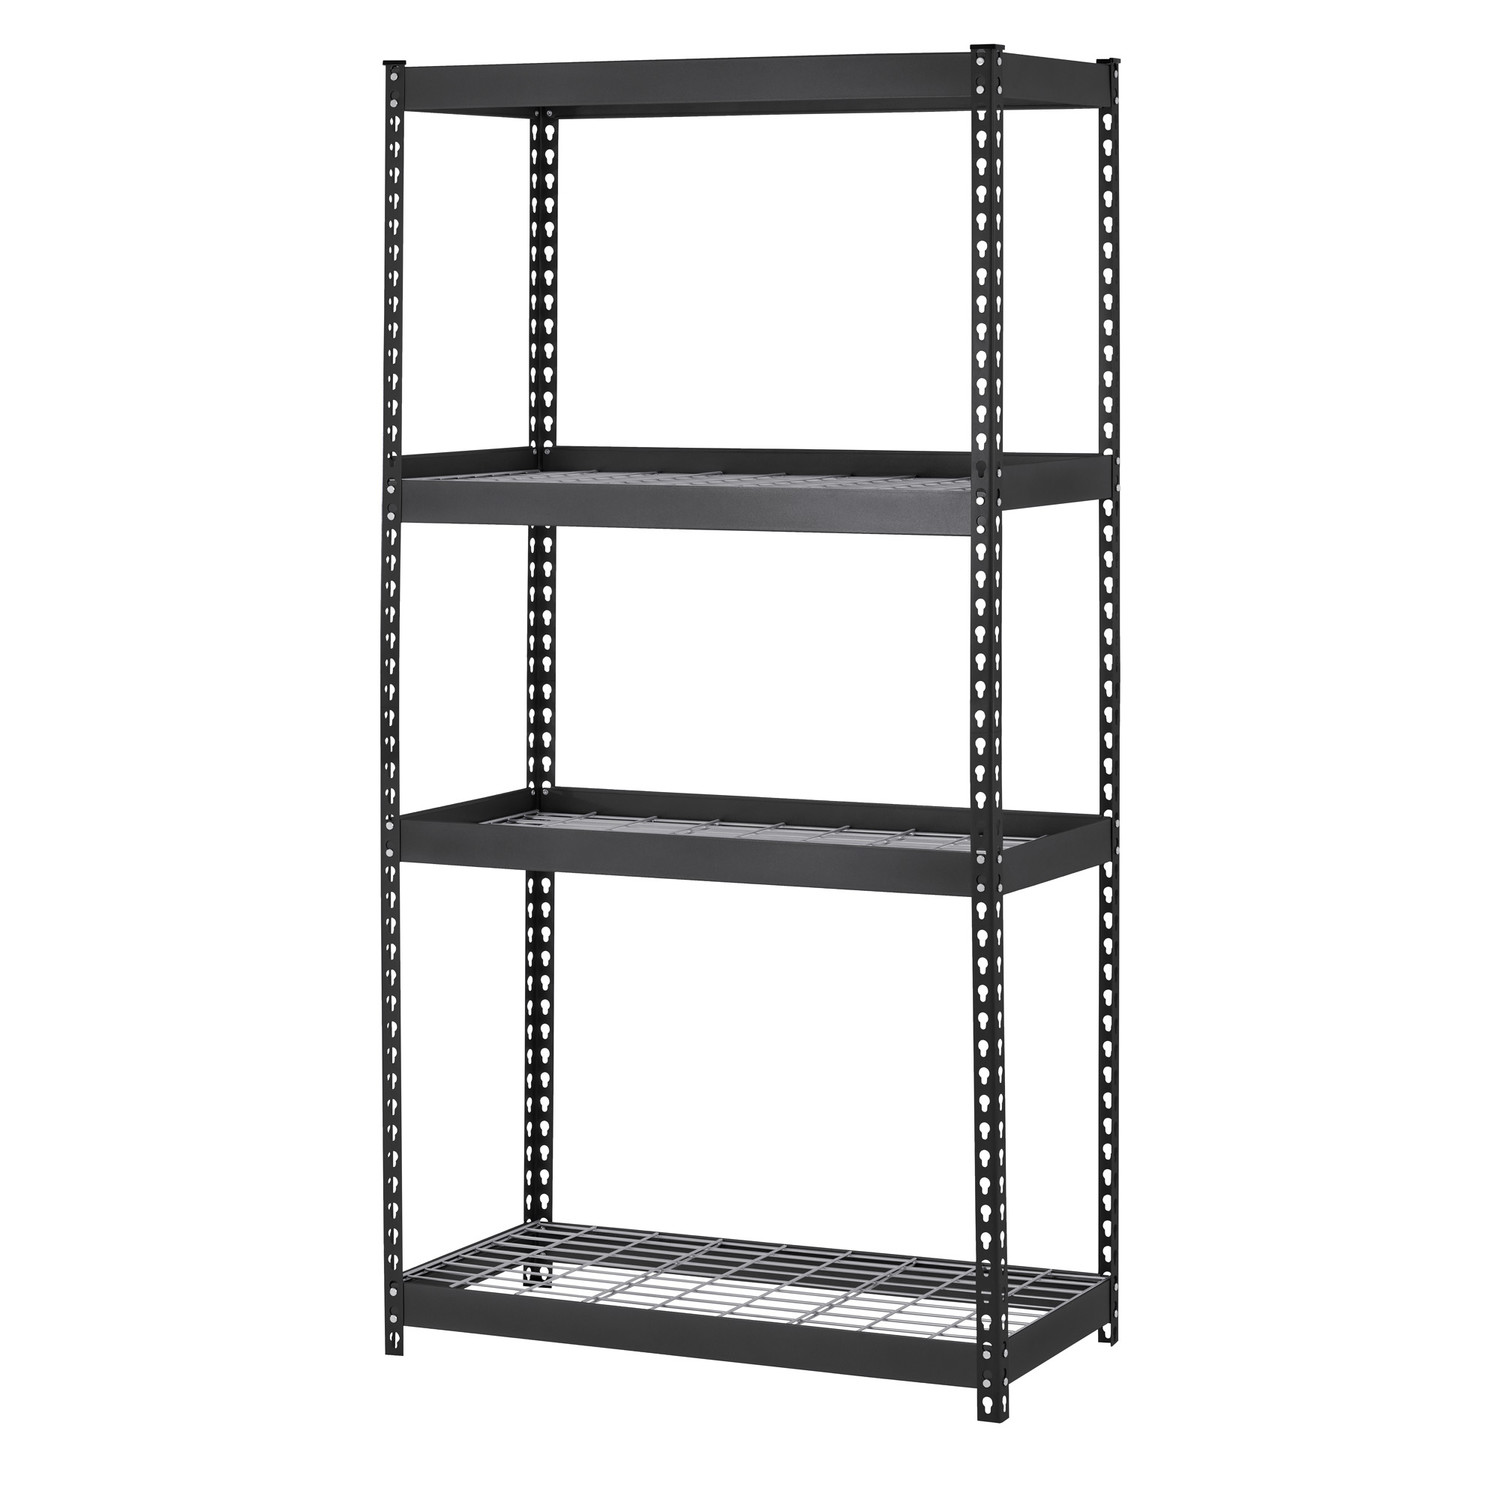 chic H Steel Four Shelf Heavy Duty Shelving Unit in black by Edsal Shelving for garage furniture ideas